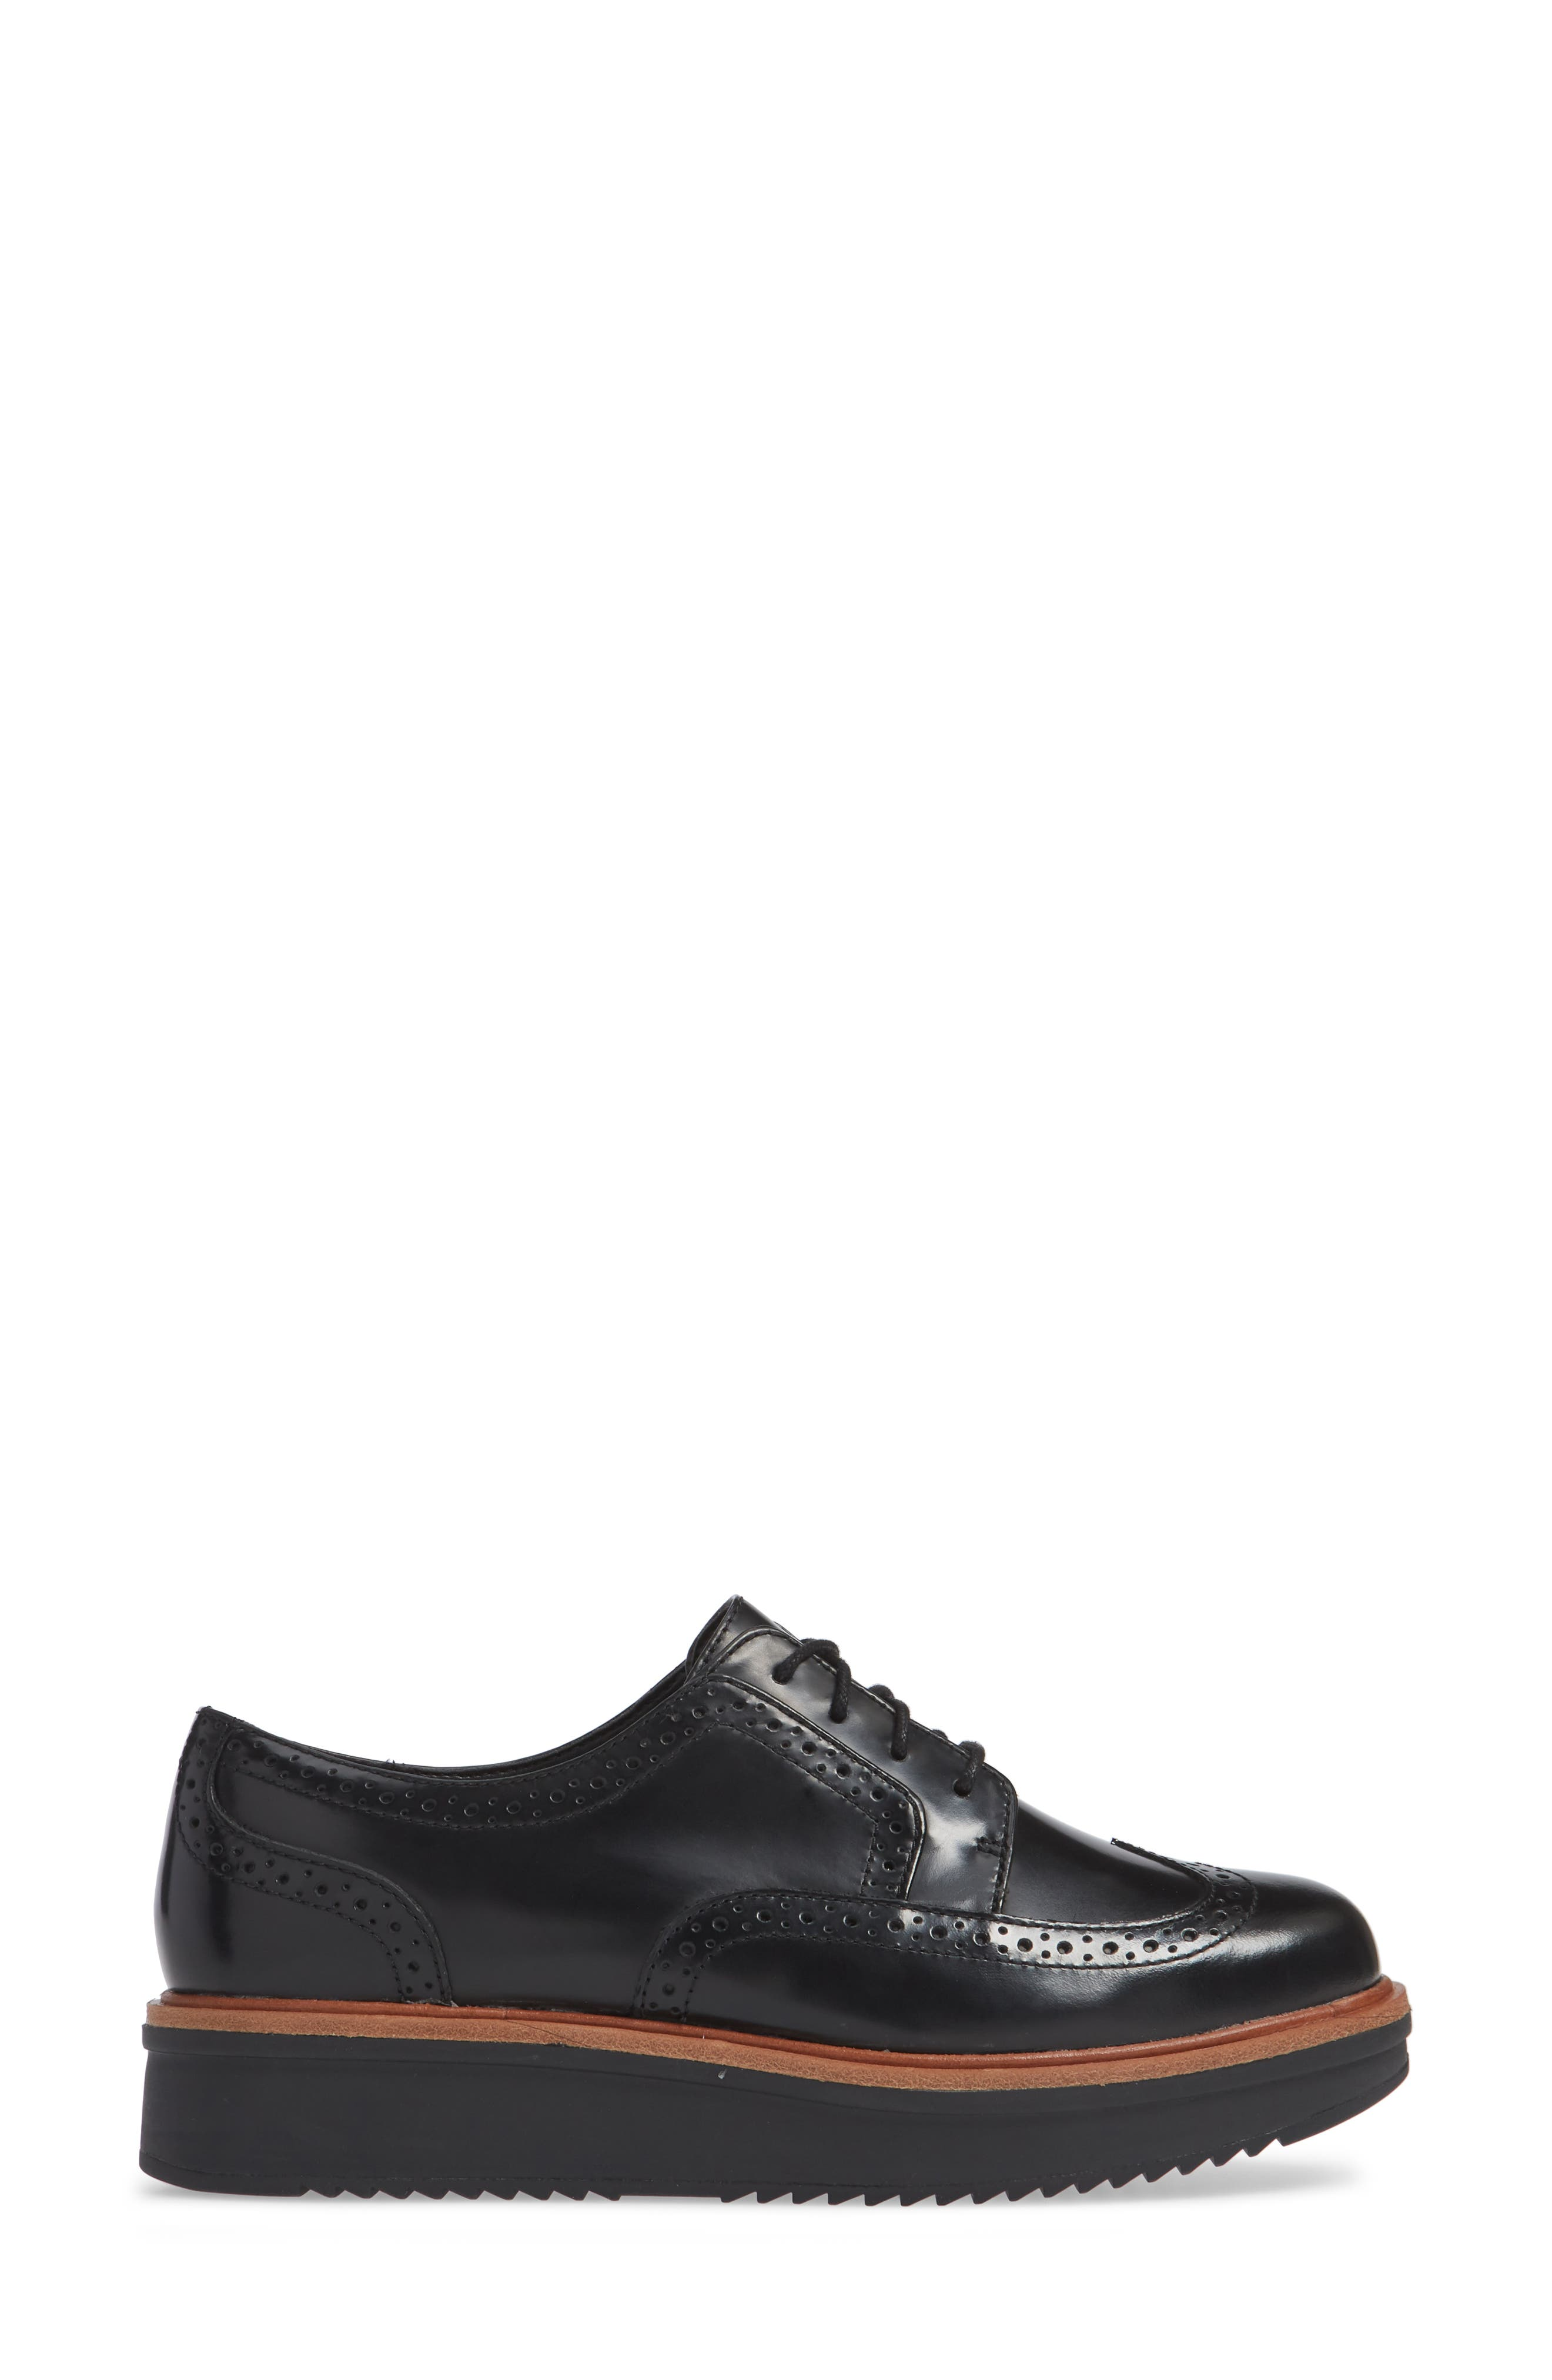 Teadale Maira Wingtip Derby,                             Alternate thumbnail 3, color,                             BLACK LEATHER